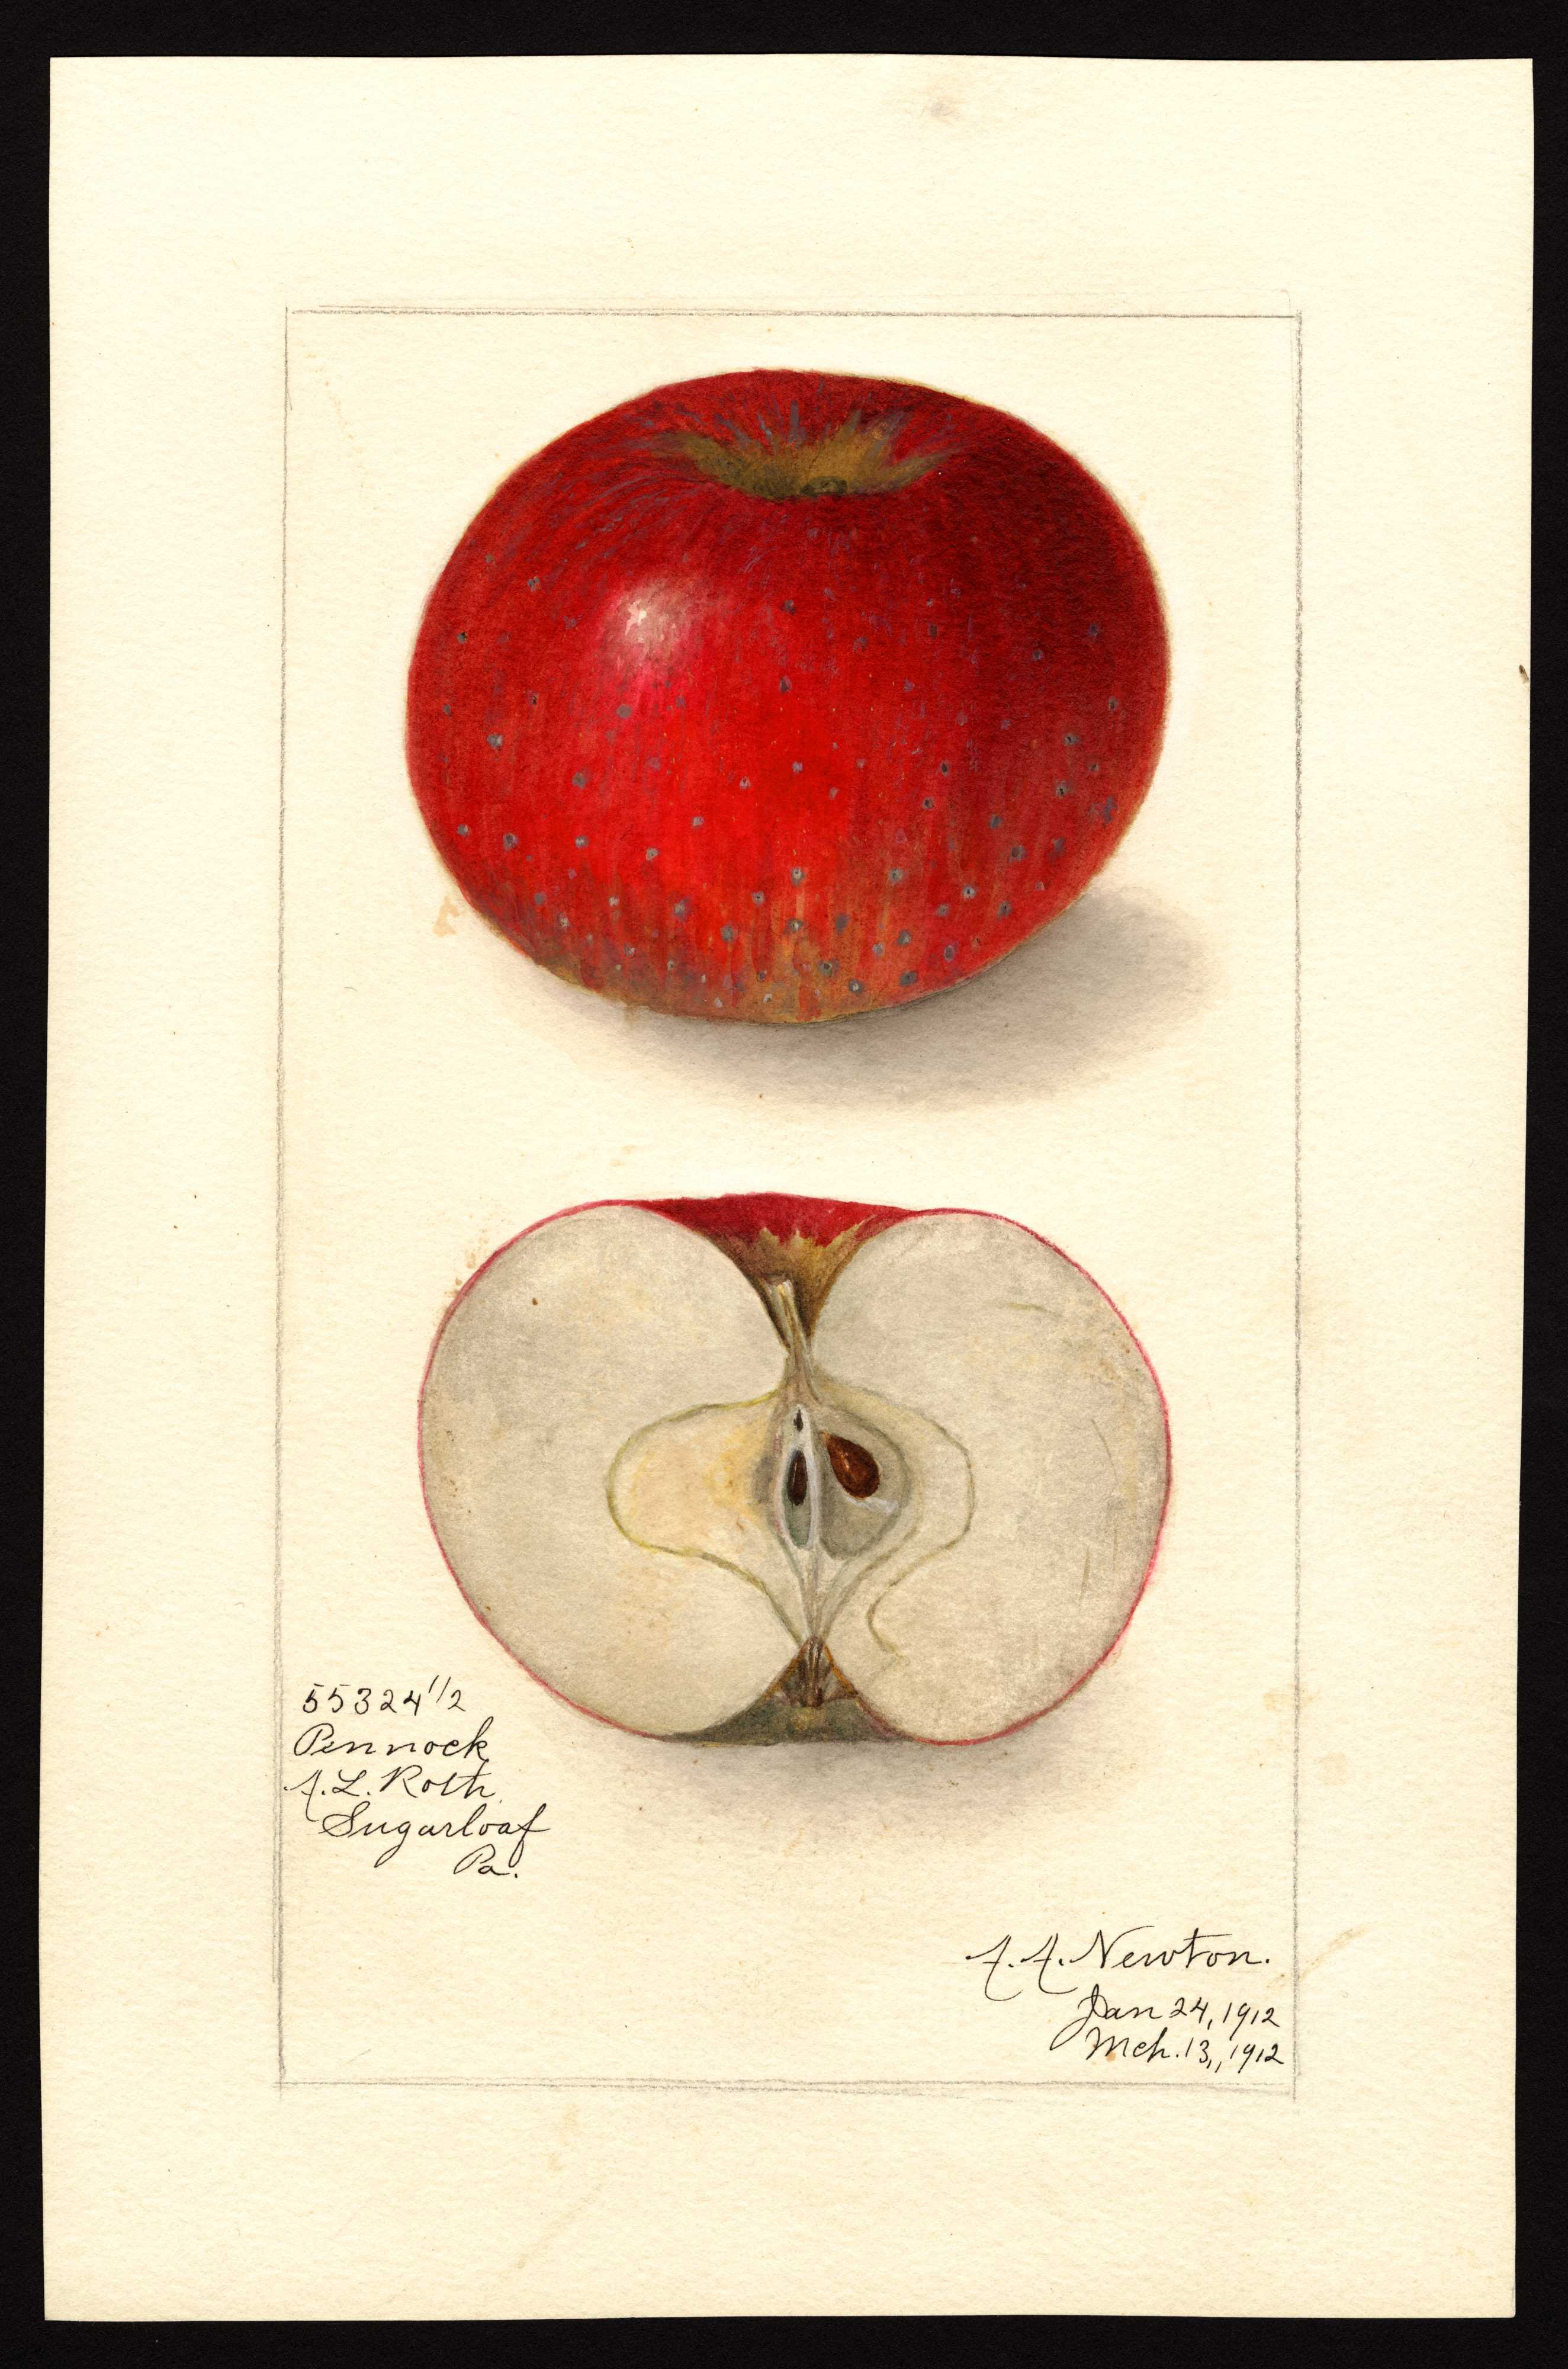 mottled and striped red apple